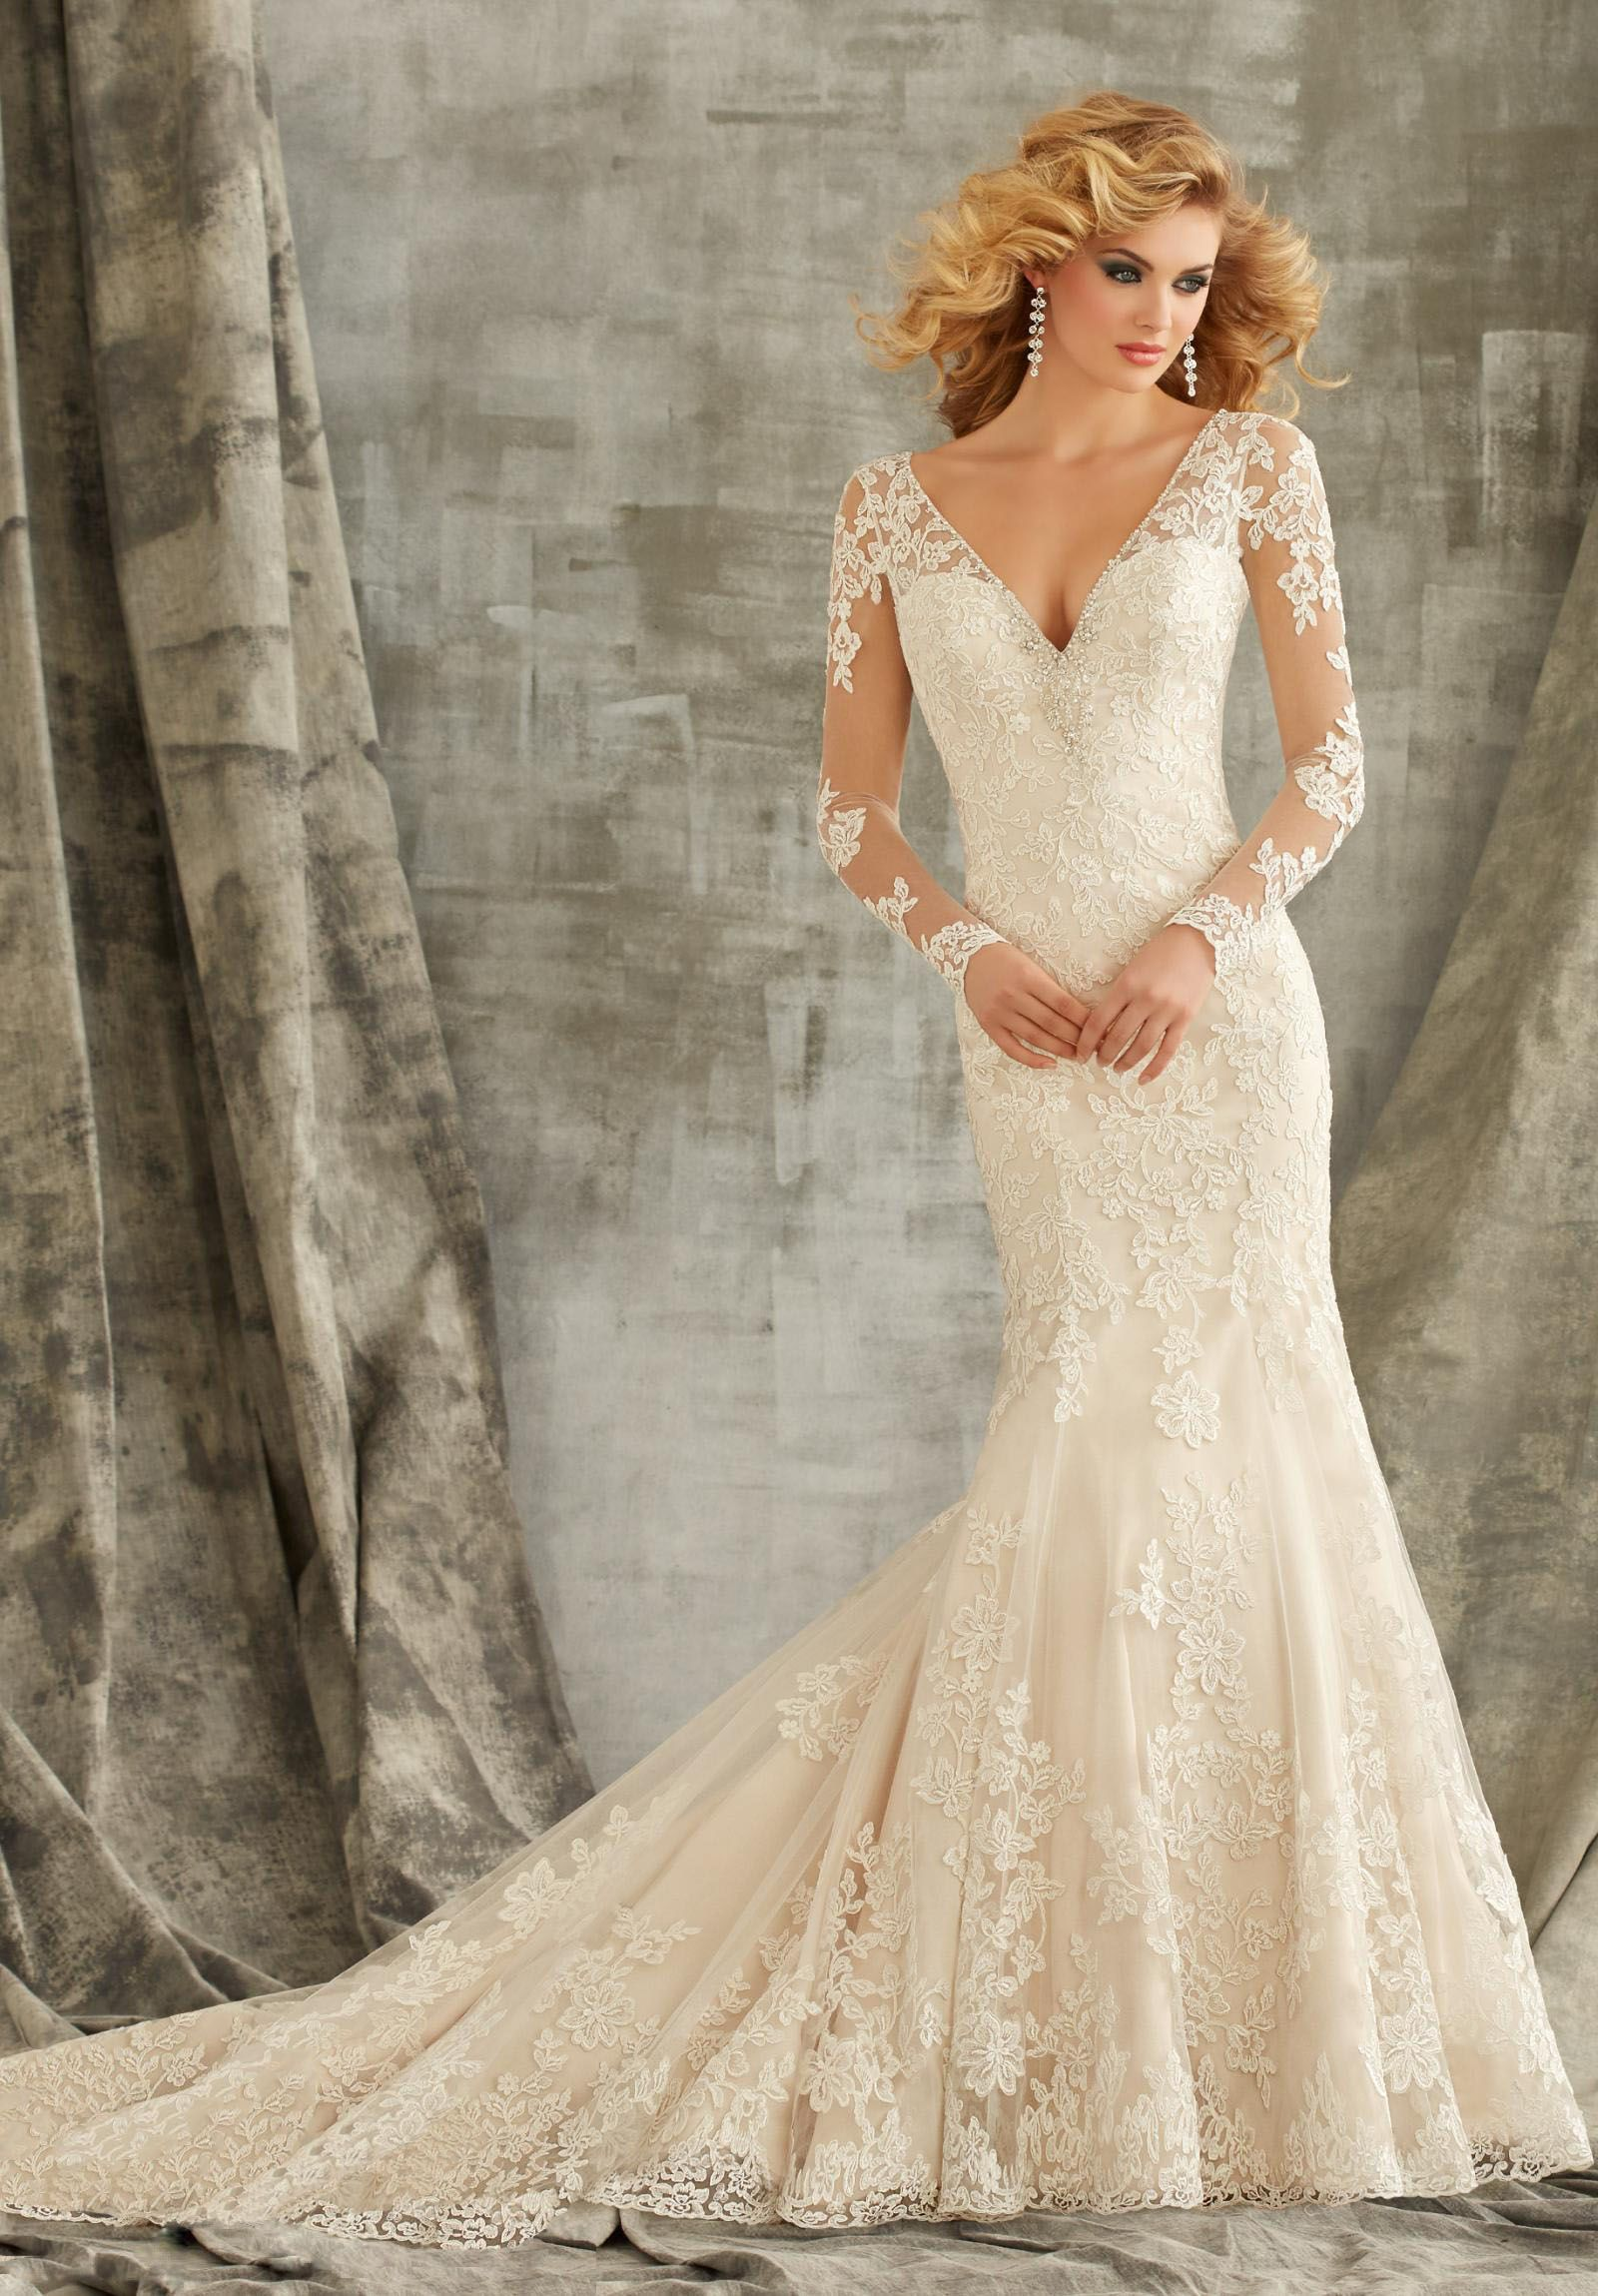 9f7abc3a Luring Long Sleeved Gowns - Petite Wedding Dresses: Tips for Our Lovely  Petite Girls! - EverAfterGuide